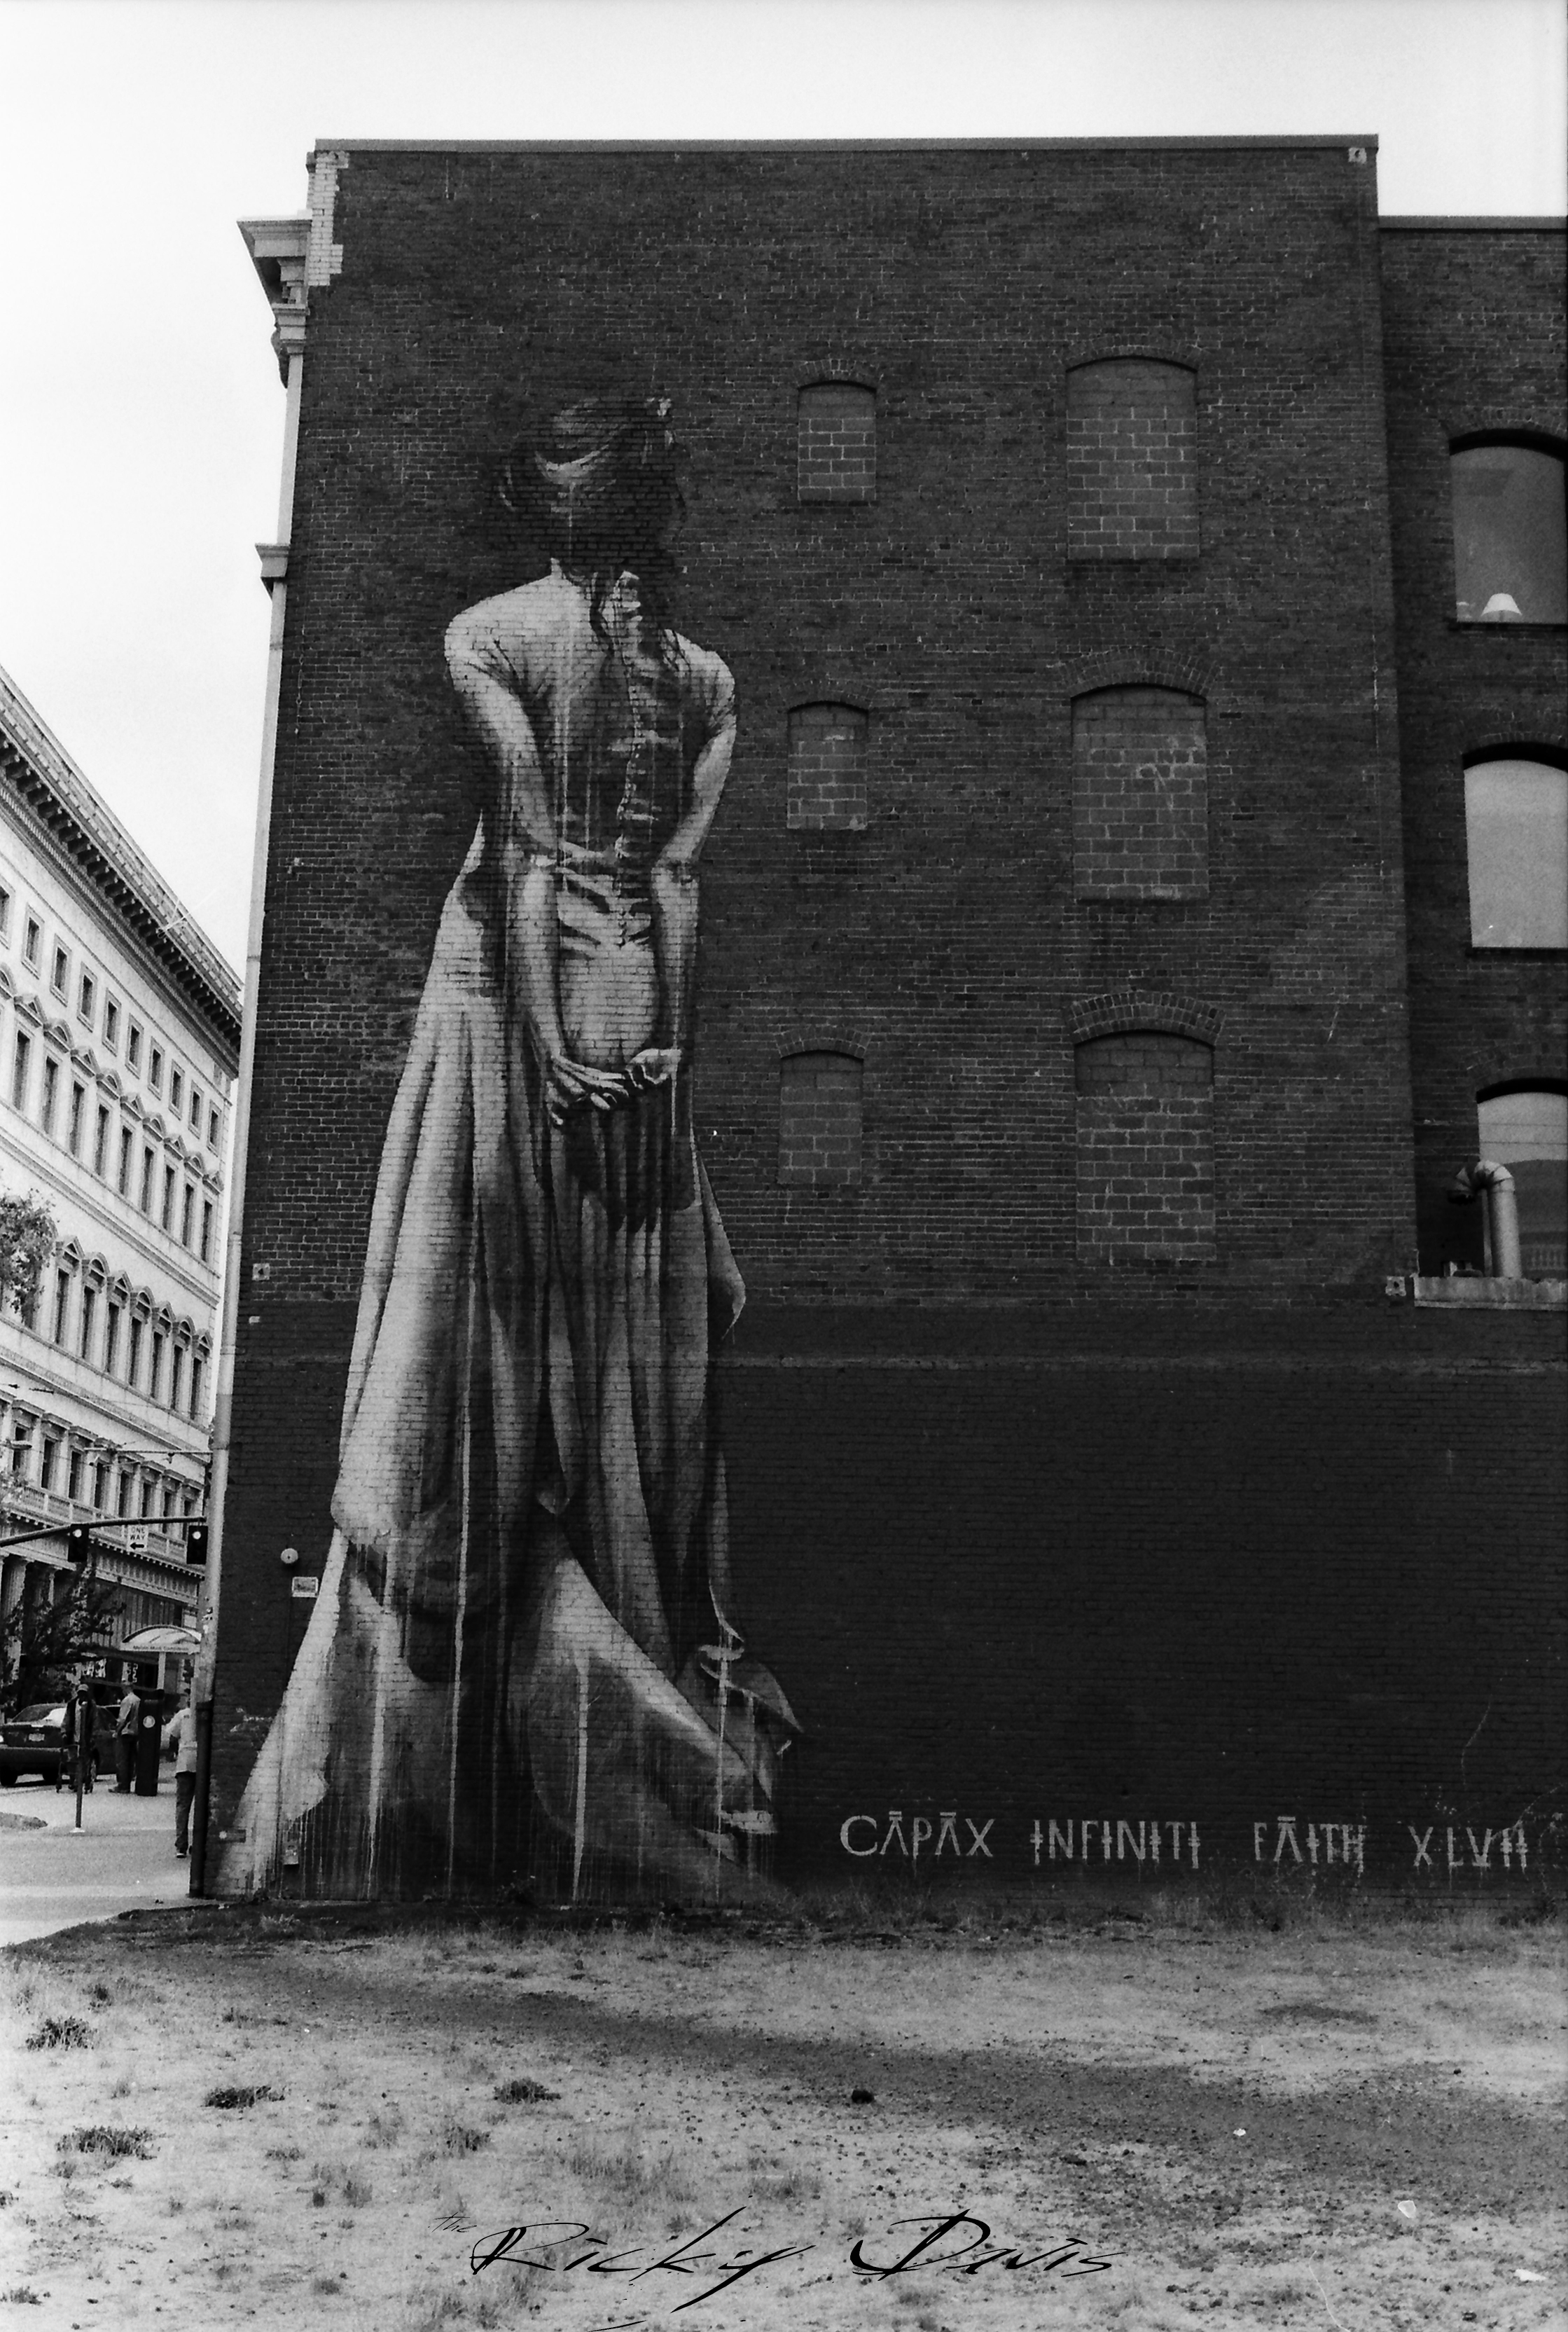 Mural in Portland, OR - Photographer Ricky Davis of TRD Photography - Ilford 400 HP5 Film